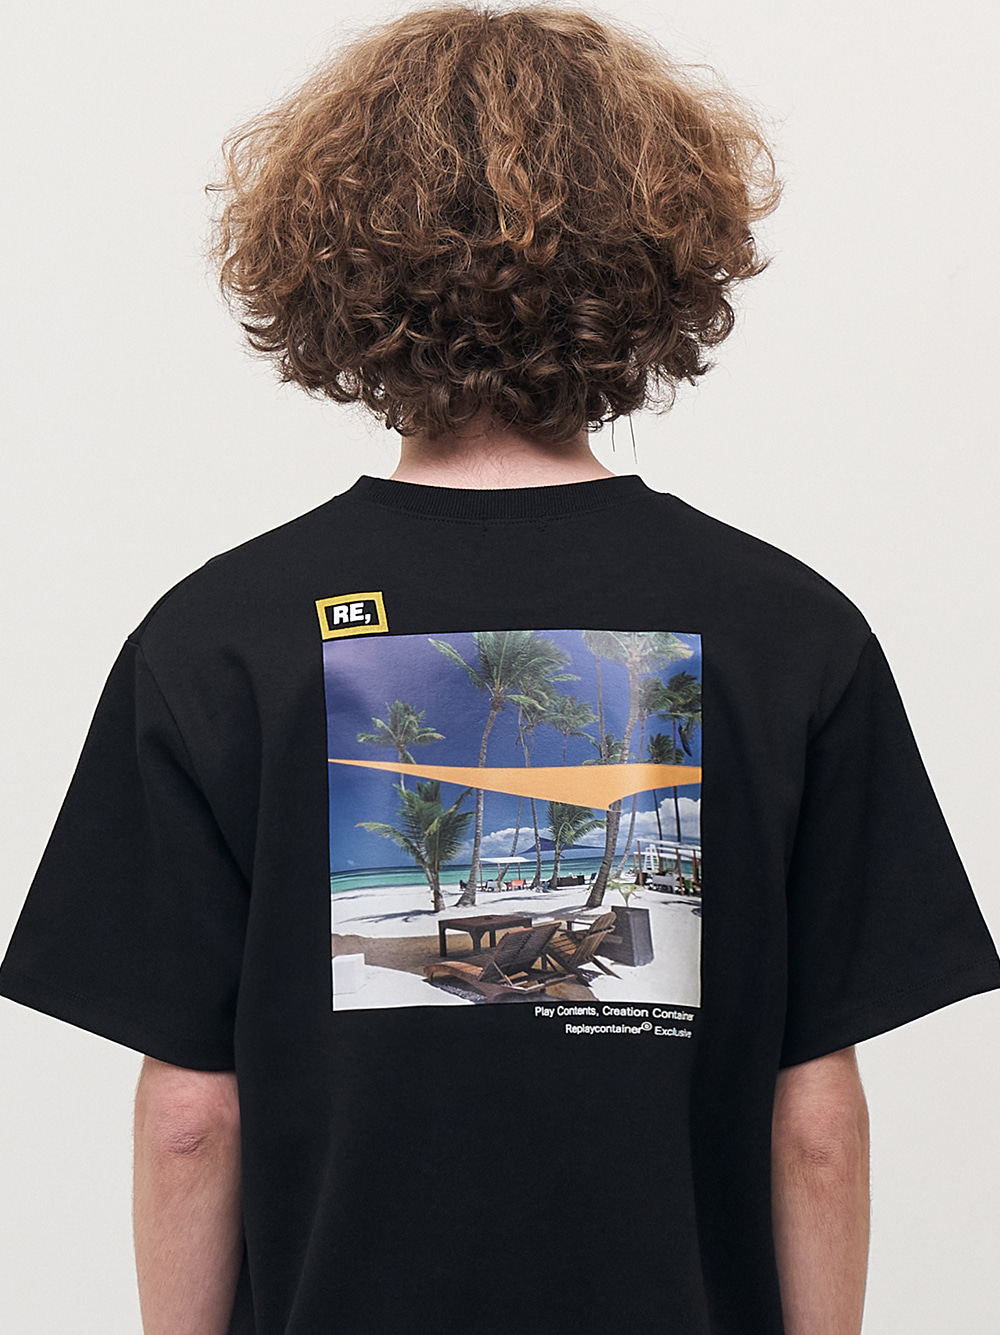 RE square black campaign half tee (beach)